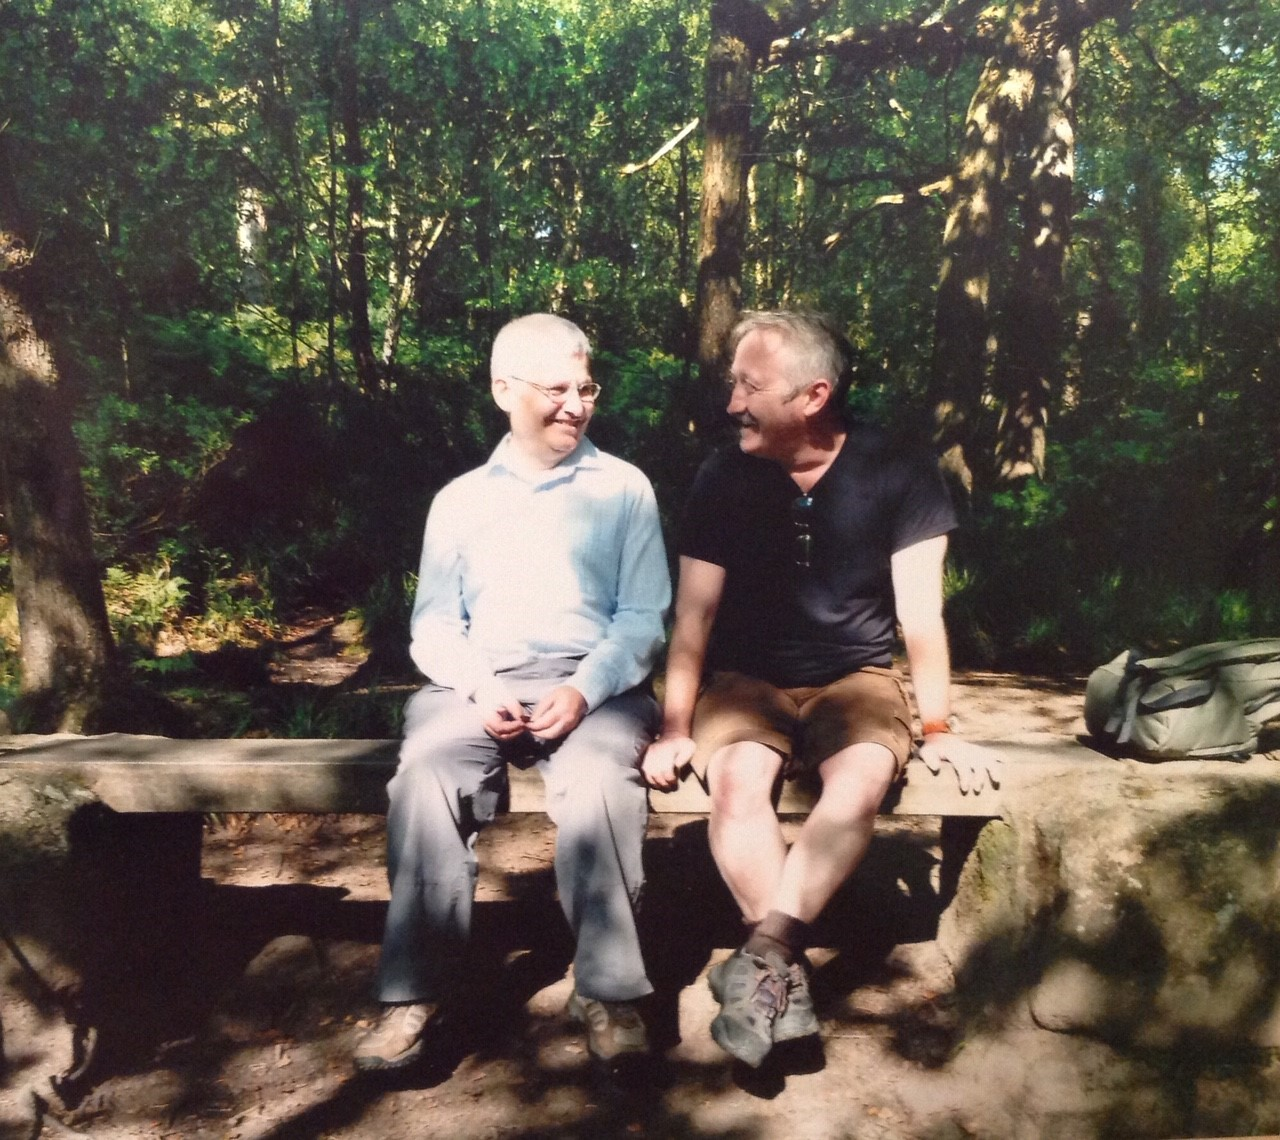 David and his partner Aram sit on a wooden bench in the woods